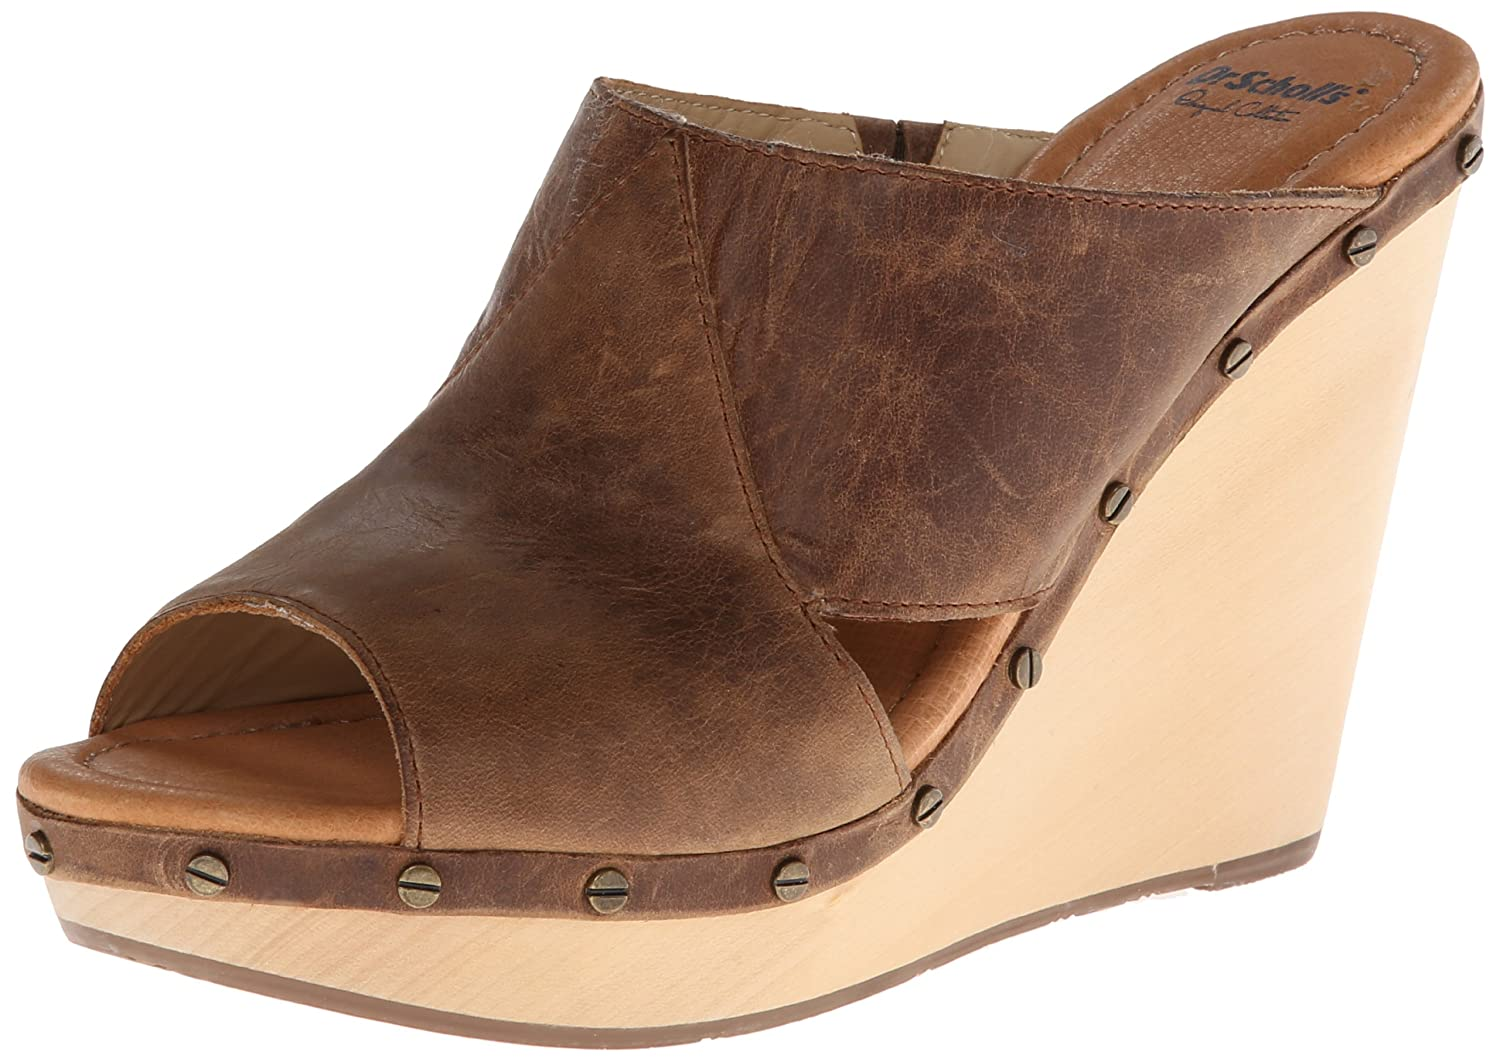 Dr. Scholl's Women's Farida Wedge Sandal B00HG5O1RK 8.5 B(M) US|Brown